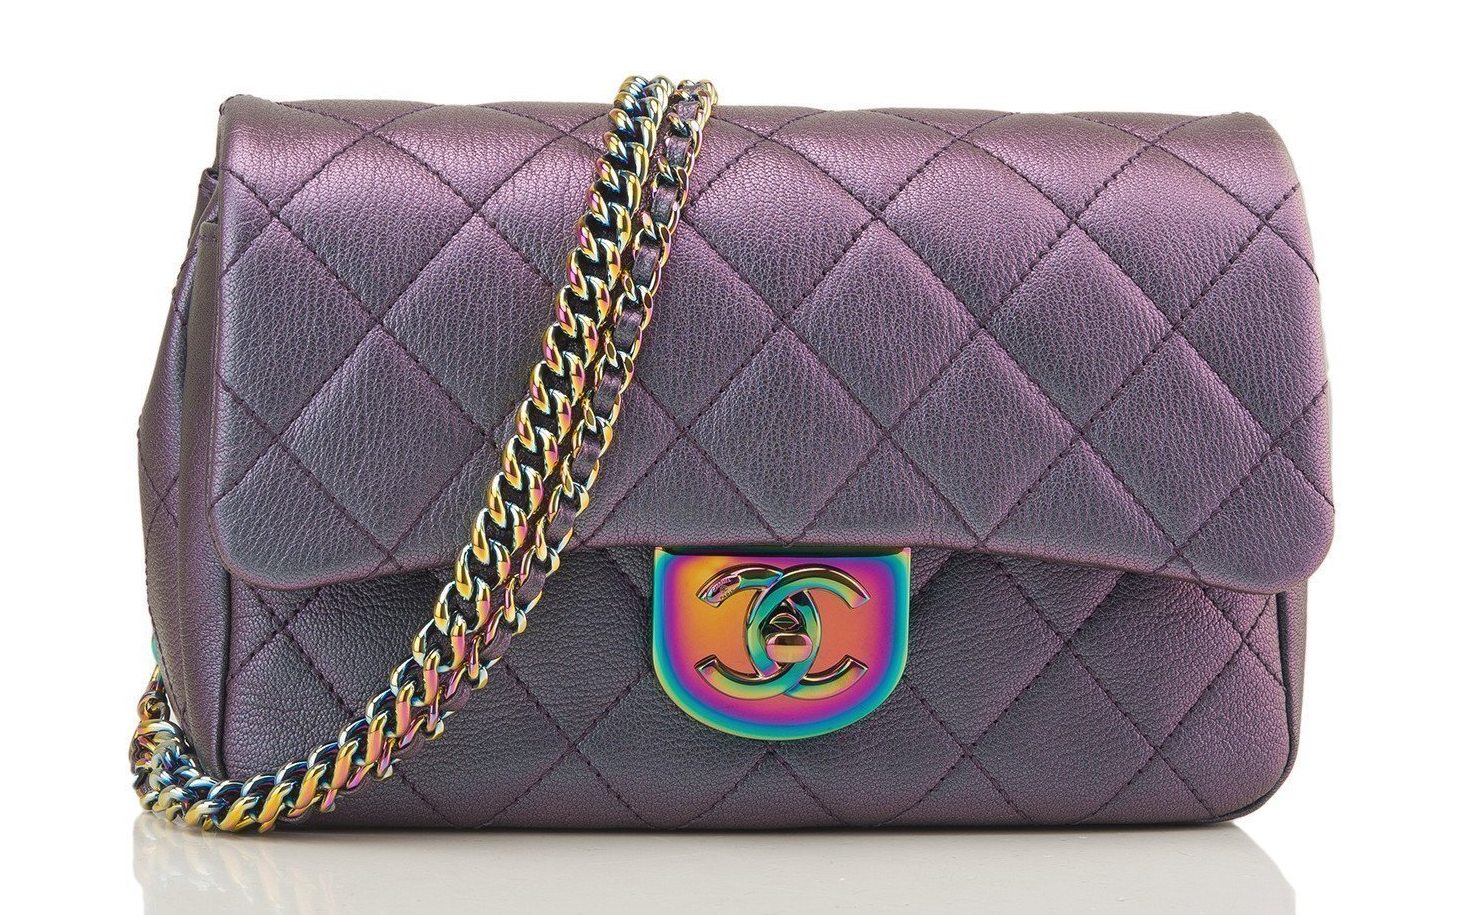 NEW AUTH Chanel Iridescent Purple Mermaid Classic Small Flap RARE